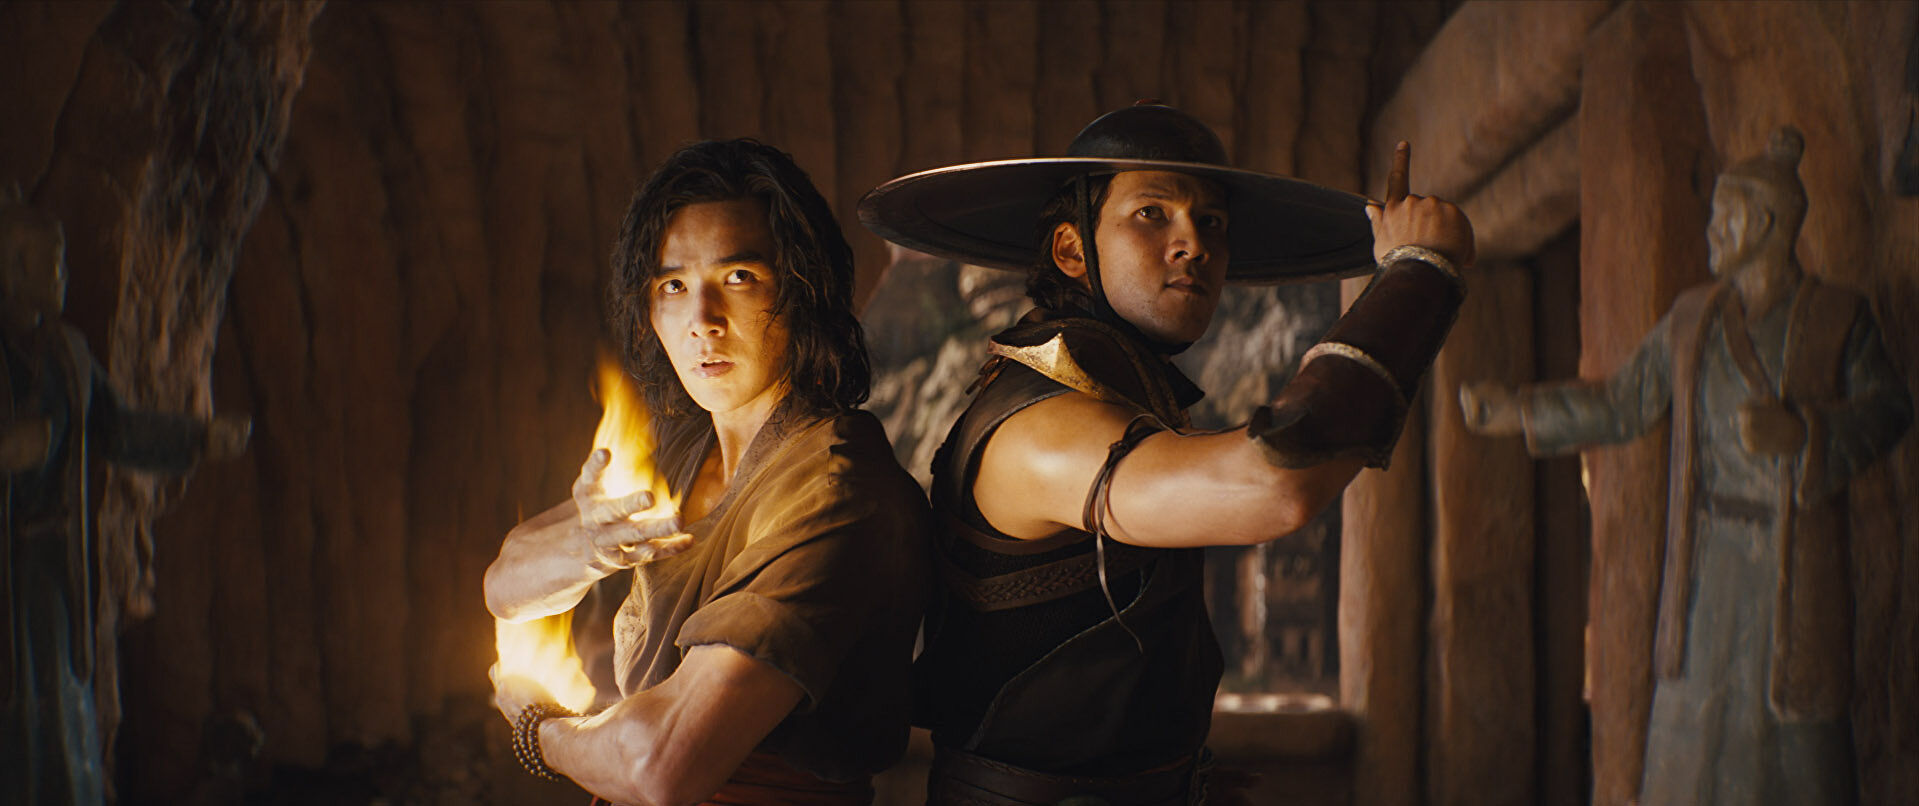 Mortal Kombat's movie trailer is violent and not awful